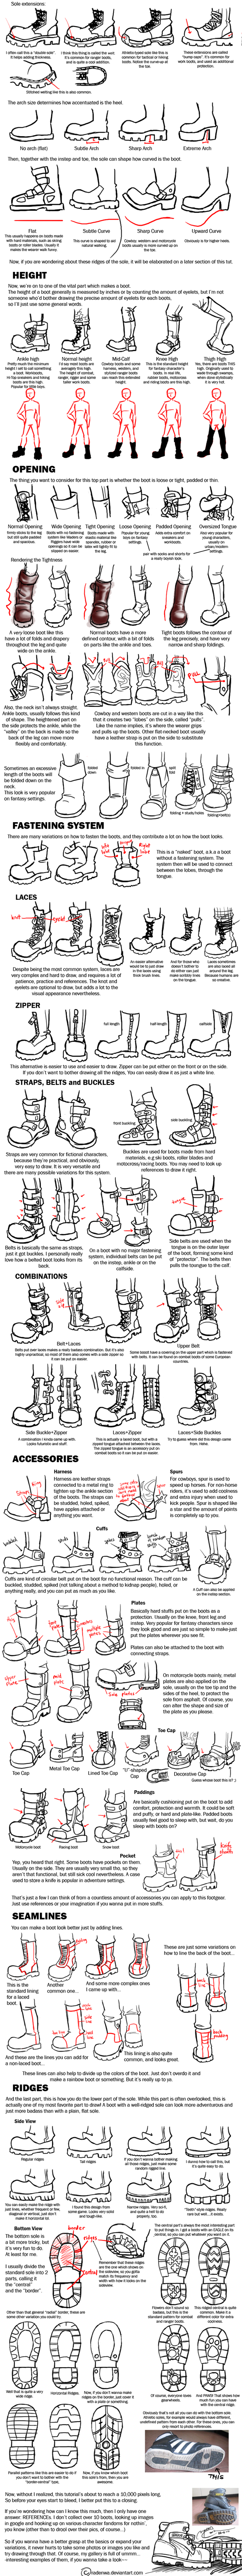 wa__s_boot_anatomy_tutorial_pt2_web_2